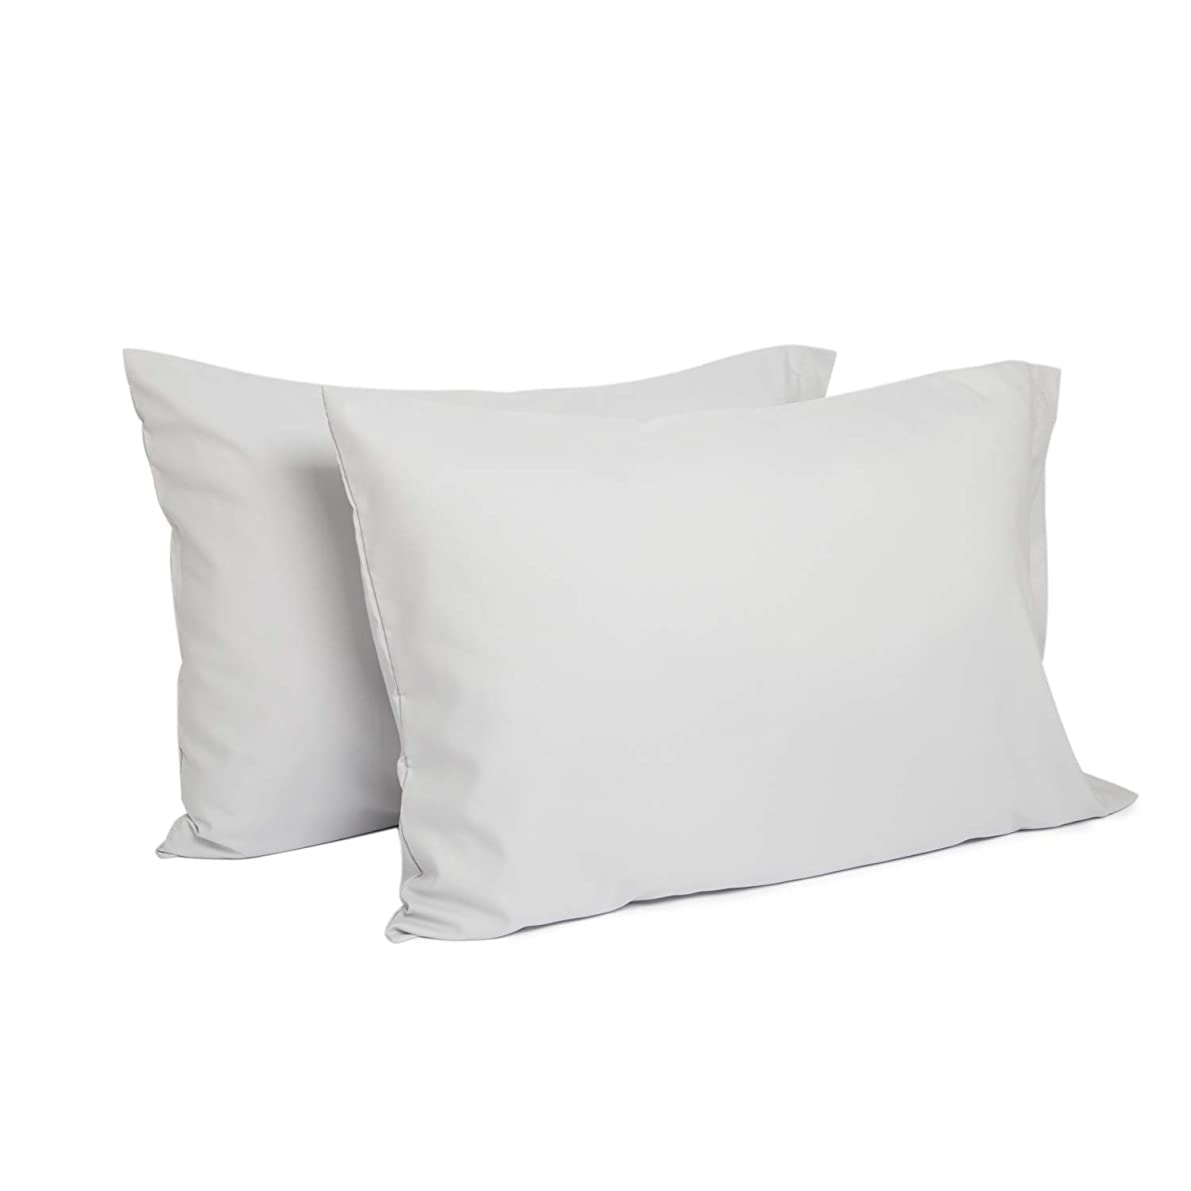 TILLYOU Standard/Queen Size Pillowcases Set of 2, Fits Pillows Sized 20x26 or 20x30, 100% Double Brushed Microfiber, Silky Soft & Hypoallergenic Pillow Cover with Envelope Closure, Pale Gray